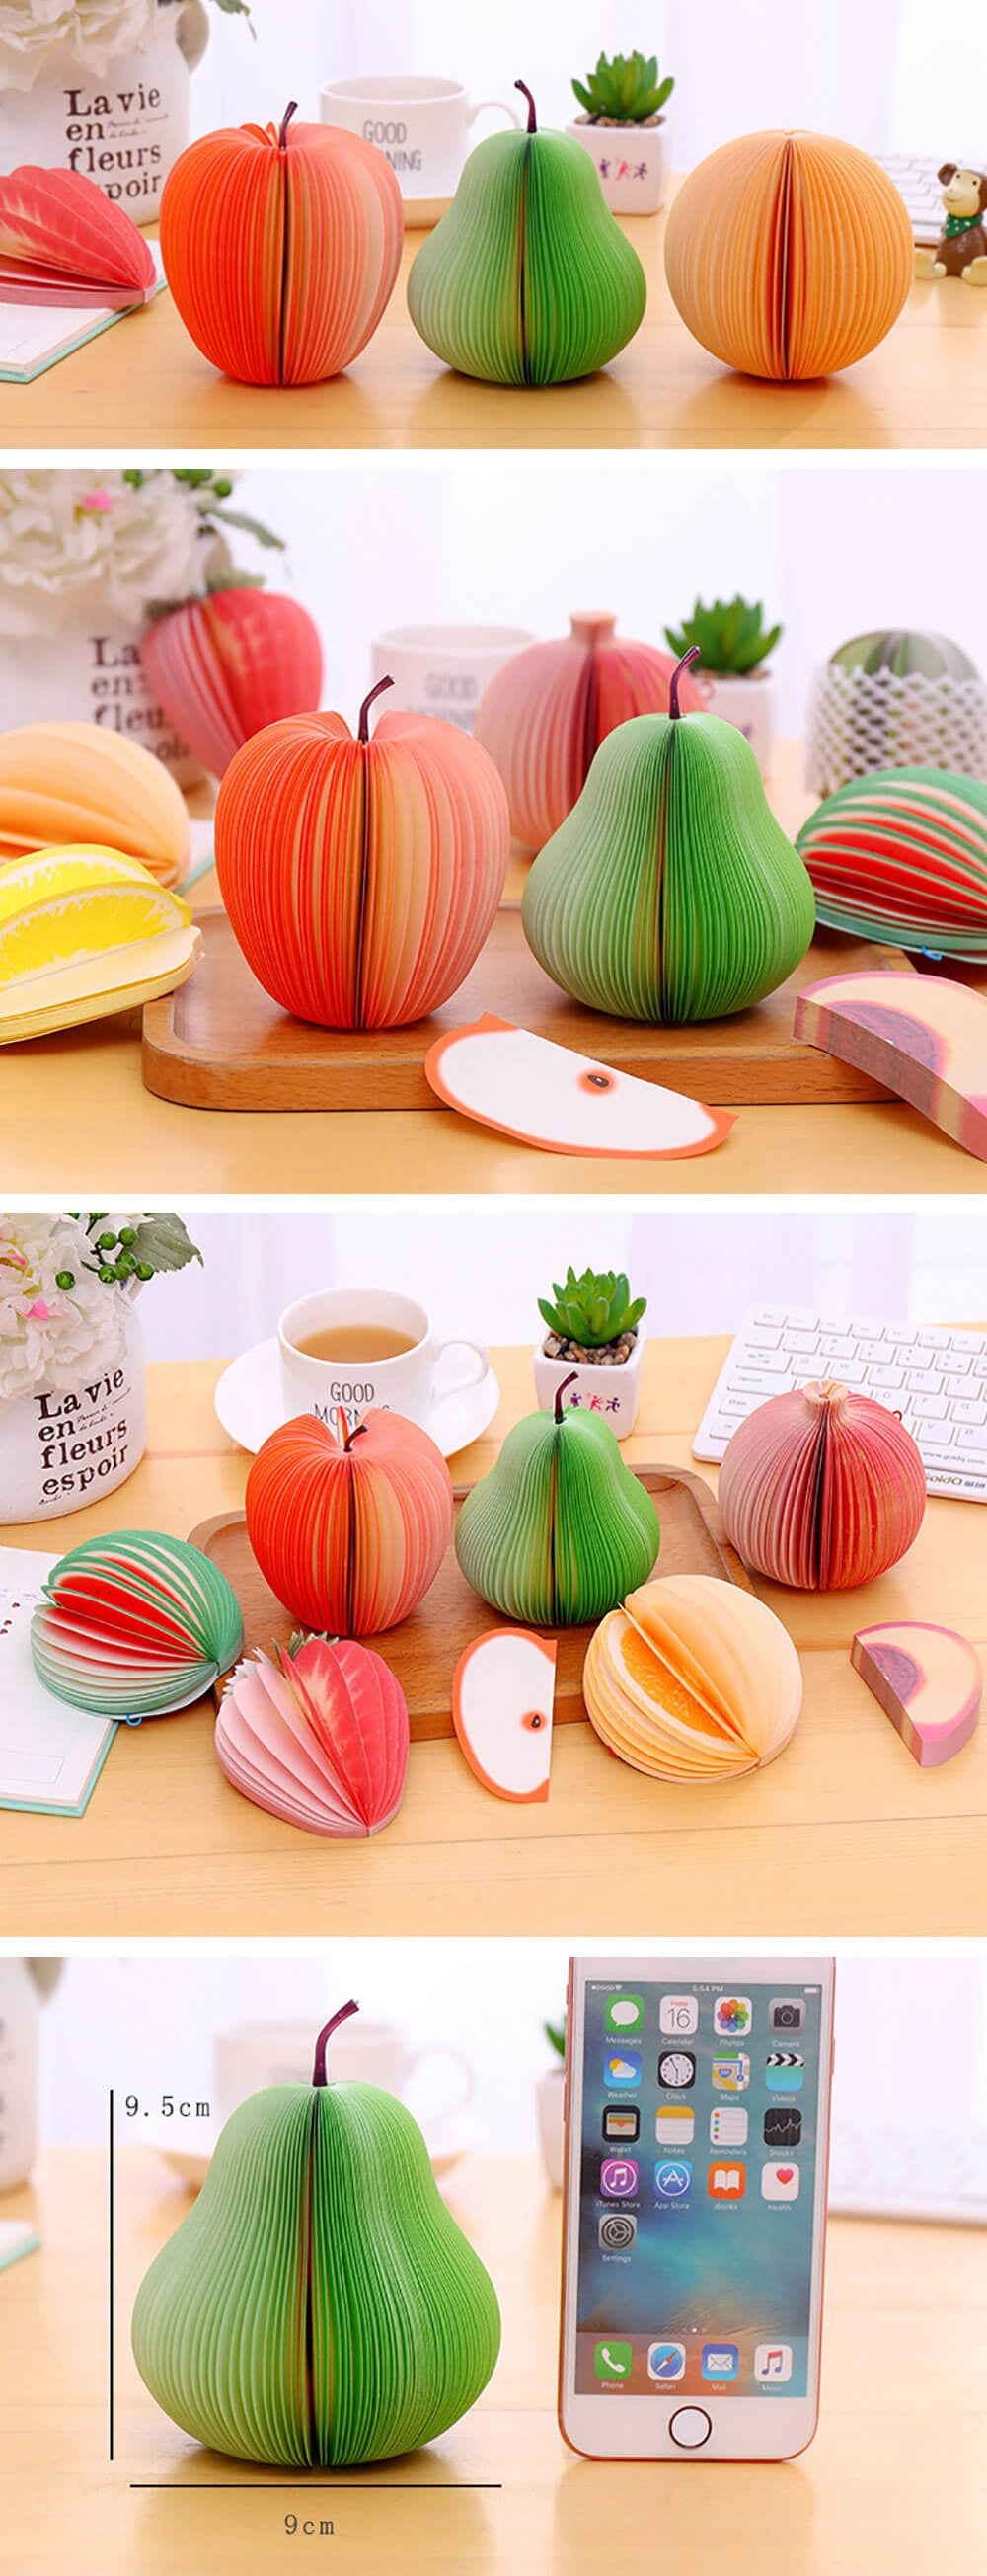 Fruit Mini Note Memo Pad - Showcase